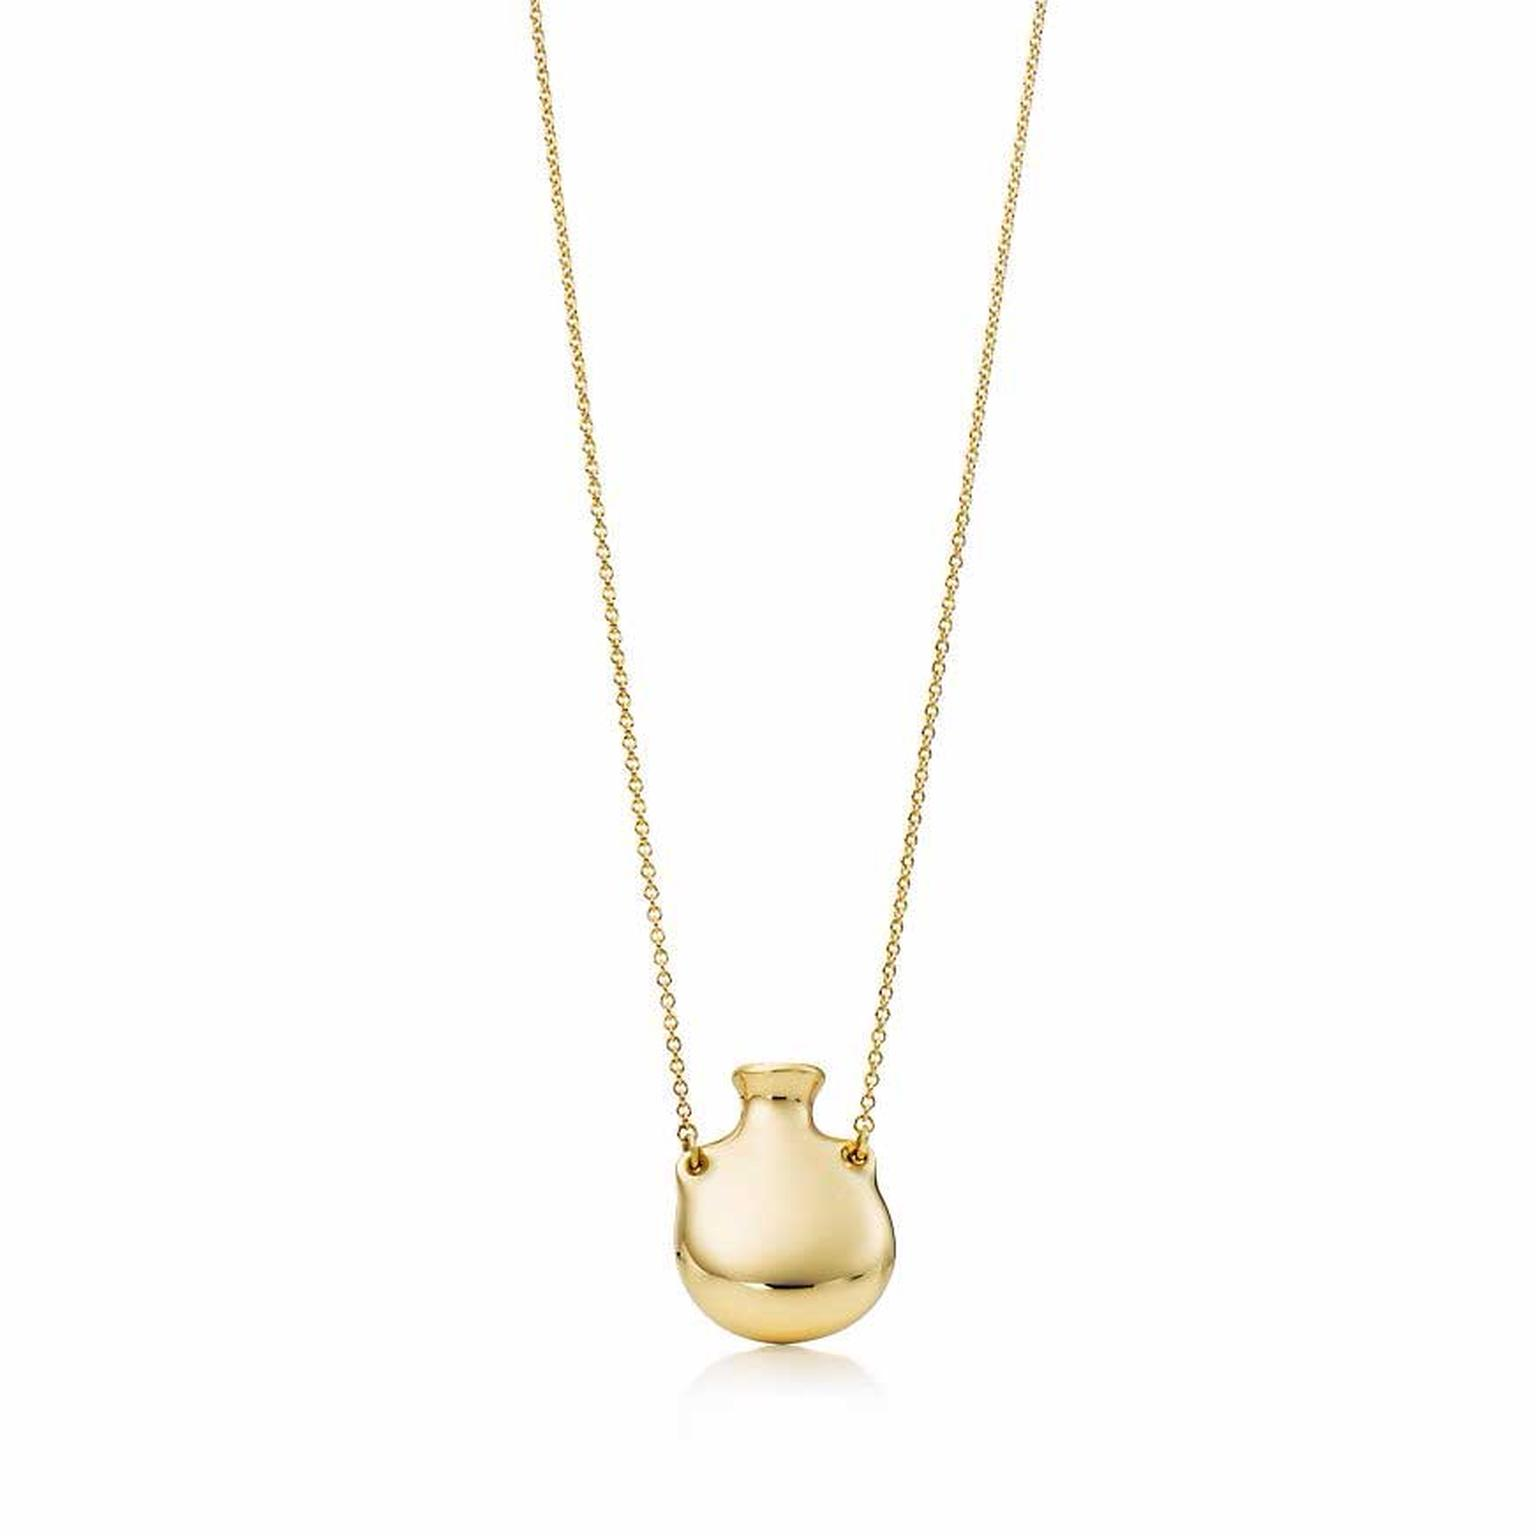 Style icons elsa perettis top five designs for tiffany the elsa peretti for tiffany bottle open pendant in yellow gold aloadofball Gallery